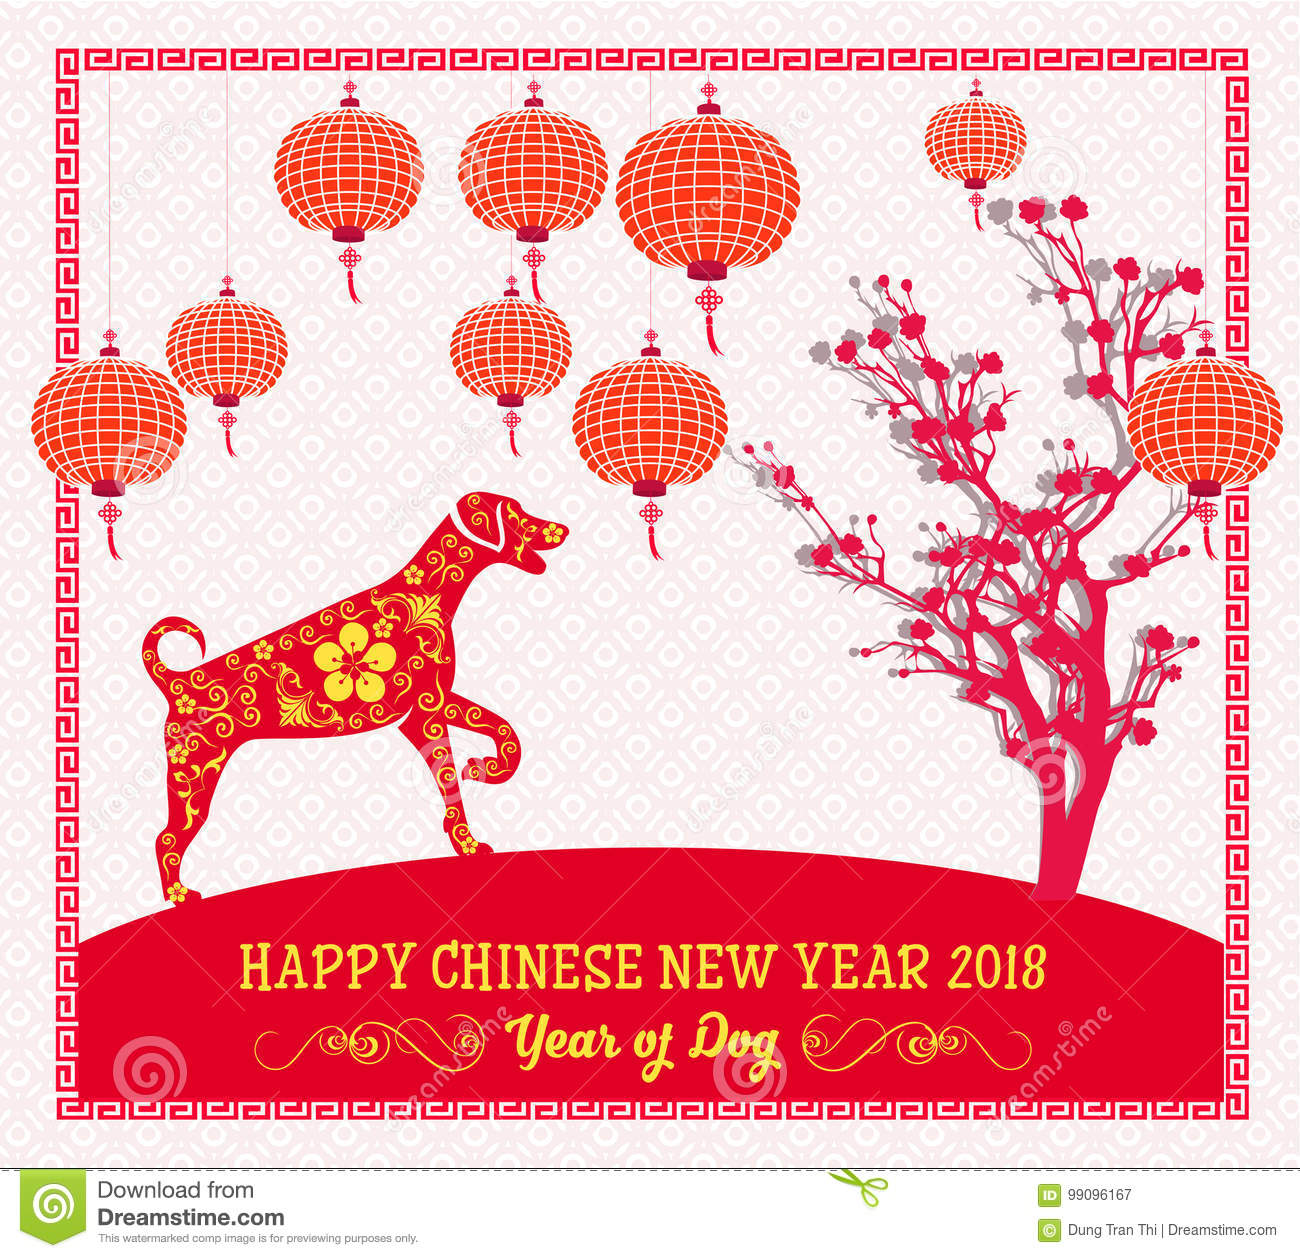 essay about chinese new year celebration The celebration of the ancestor's spirits on the new year is to celebrate chinese new year and chinese moon festival are not haven't found the essay you.